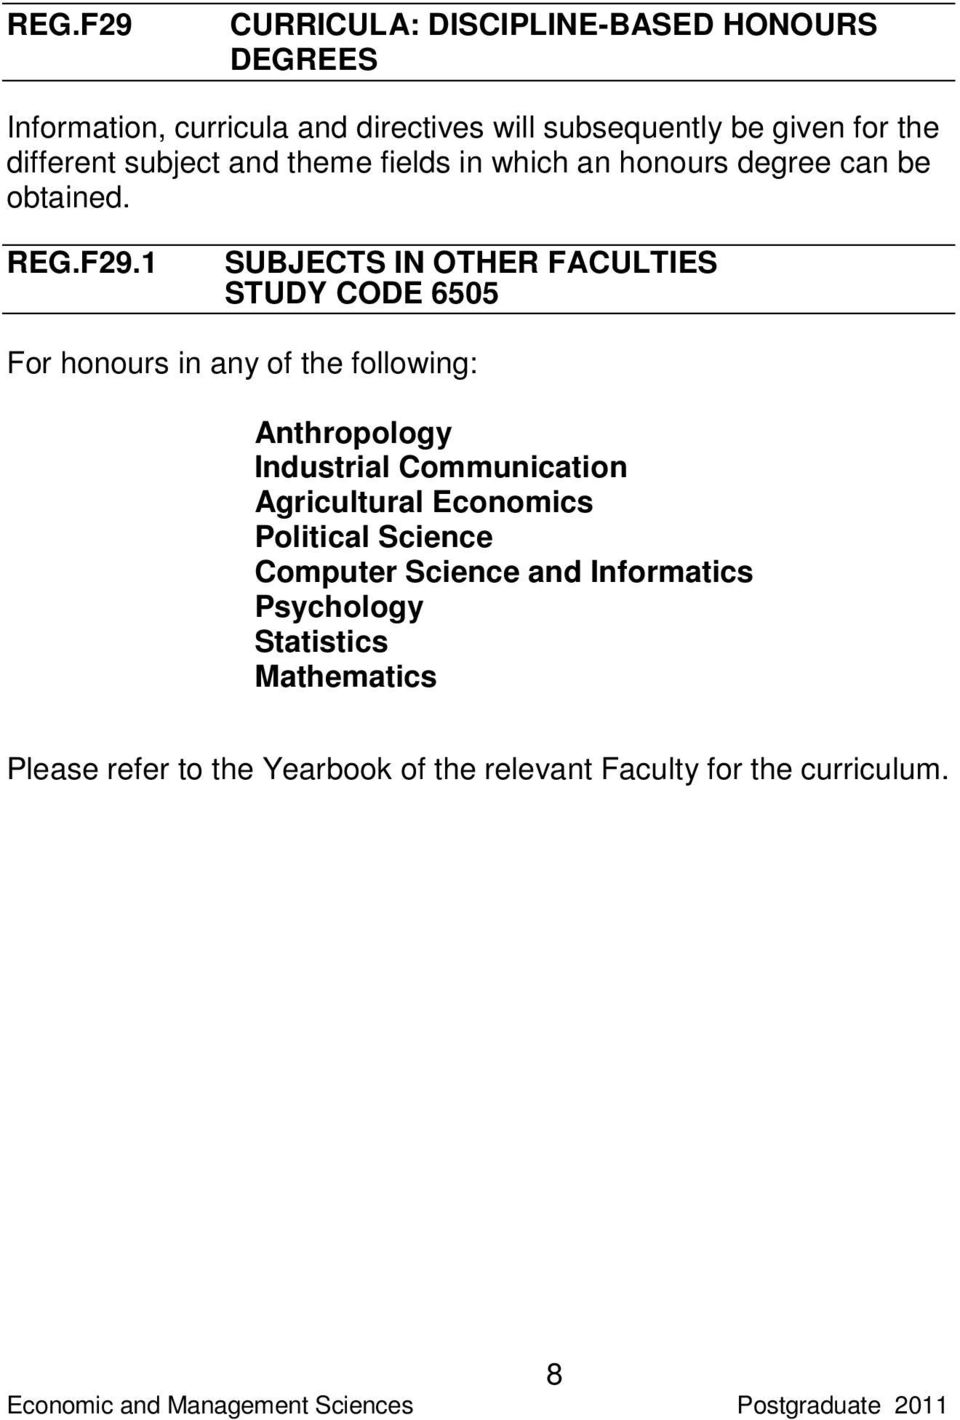 1 SUBJECTS IN OTHER FACULTIES STUDY CODE 6505 For honours in any of the following: Anthropology Industrial Communication